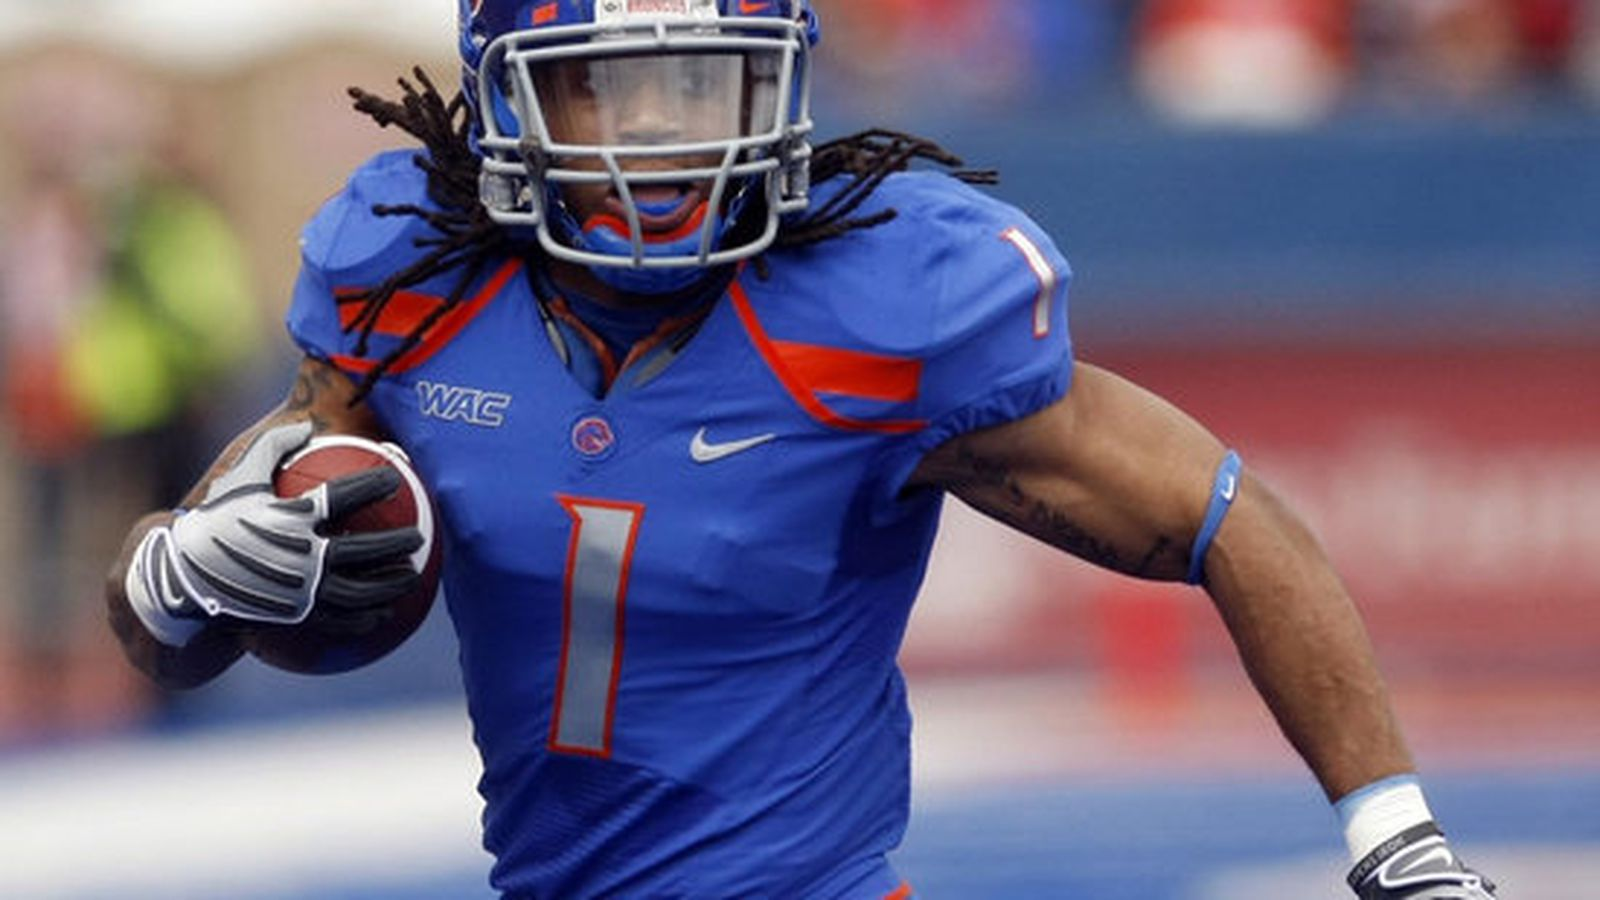 Boise States Numerical Roster What Bronco Player Will Wear No Satu Next Year One Bronco